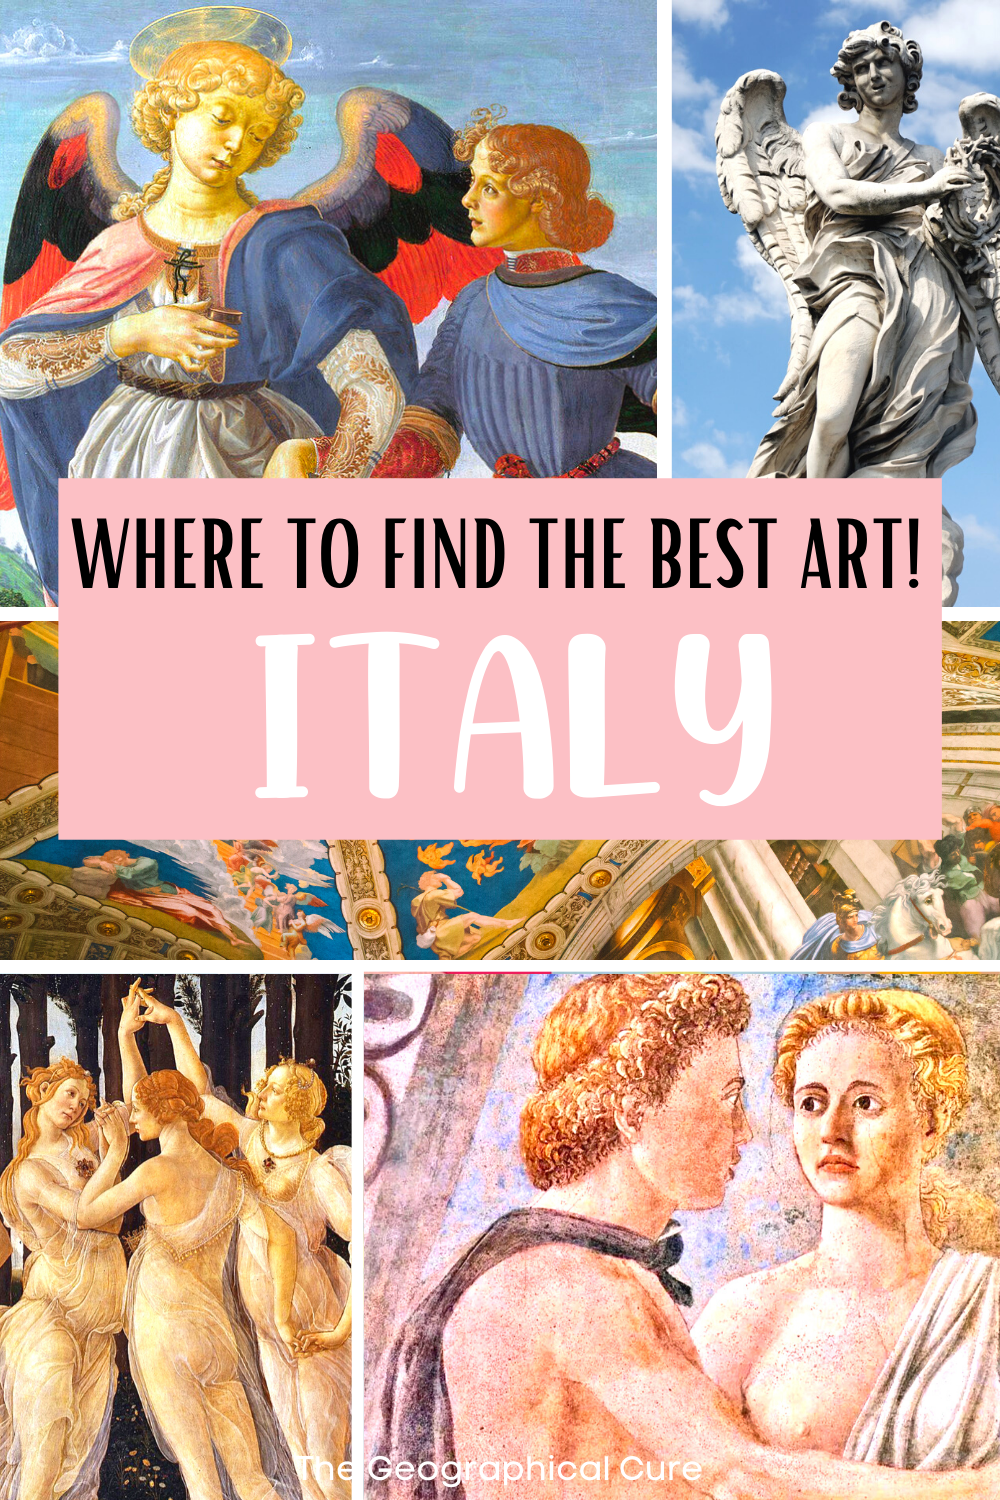 Italy art check list, where to find the best art